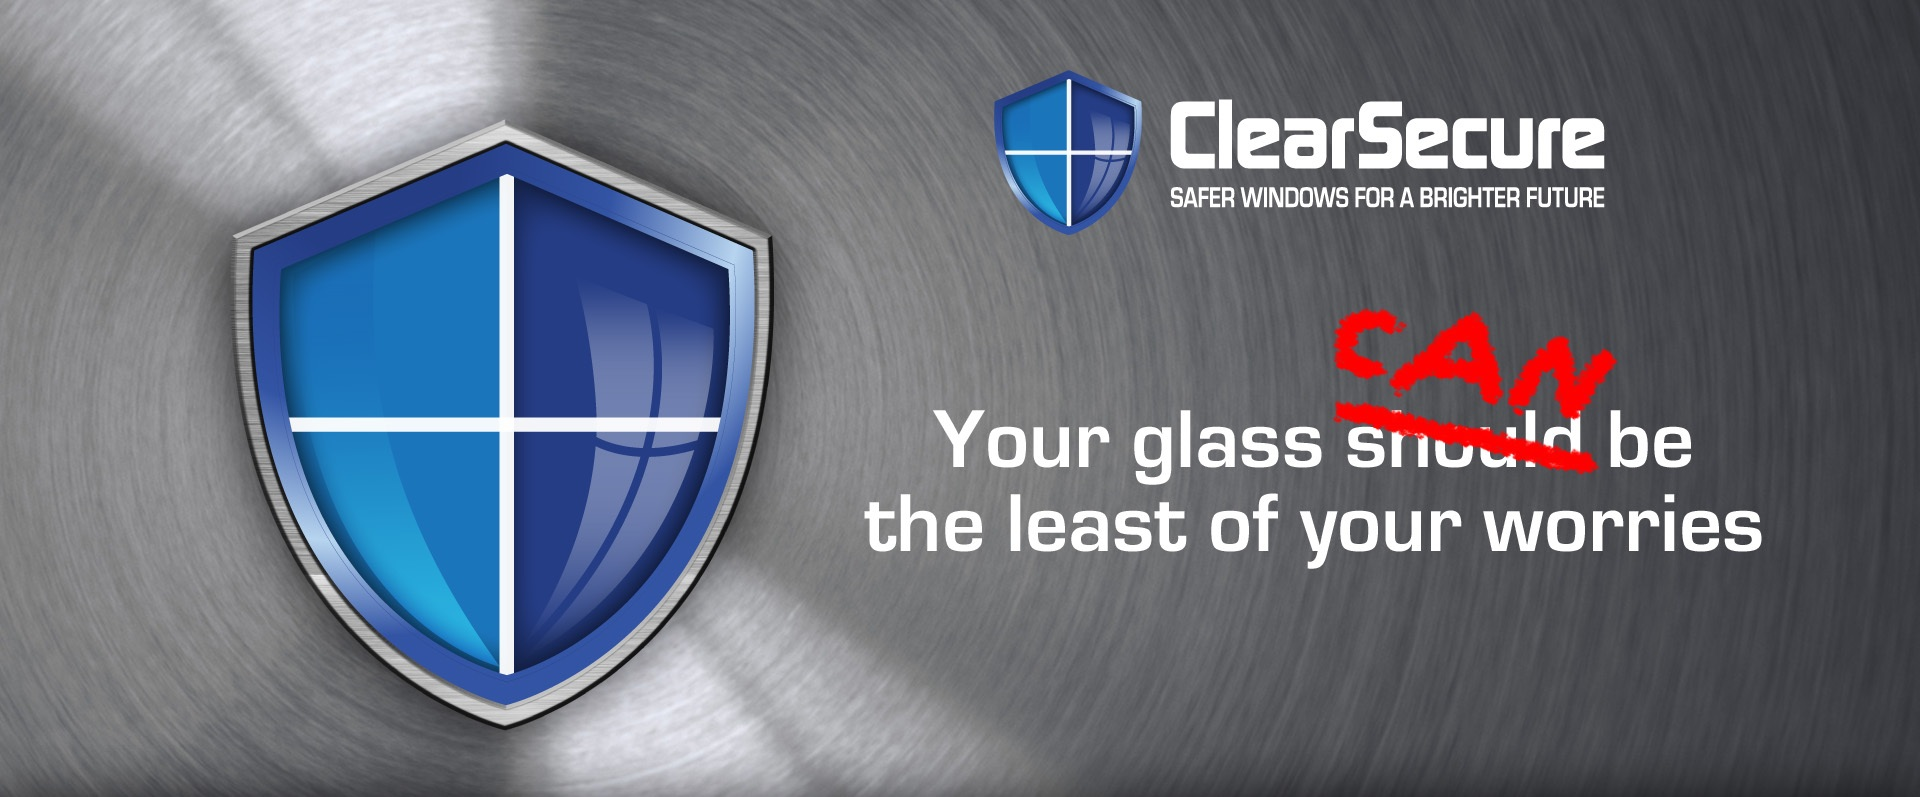 ClearSecureBanners-HiDef_2019-02-03a_ballistic-protection.jpg